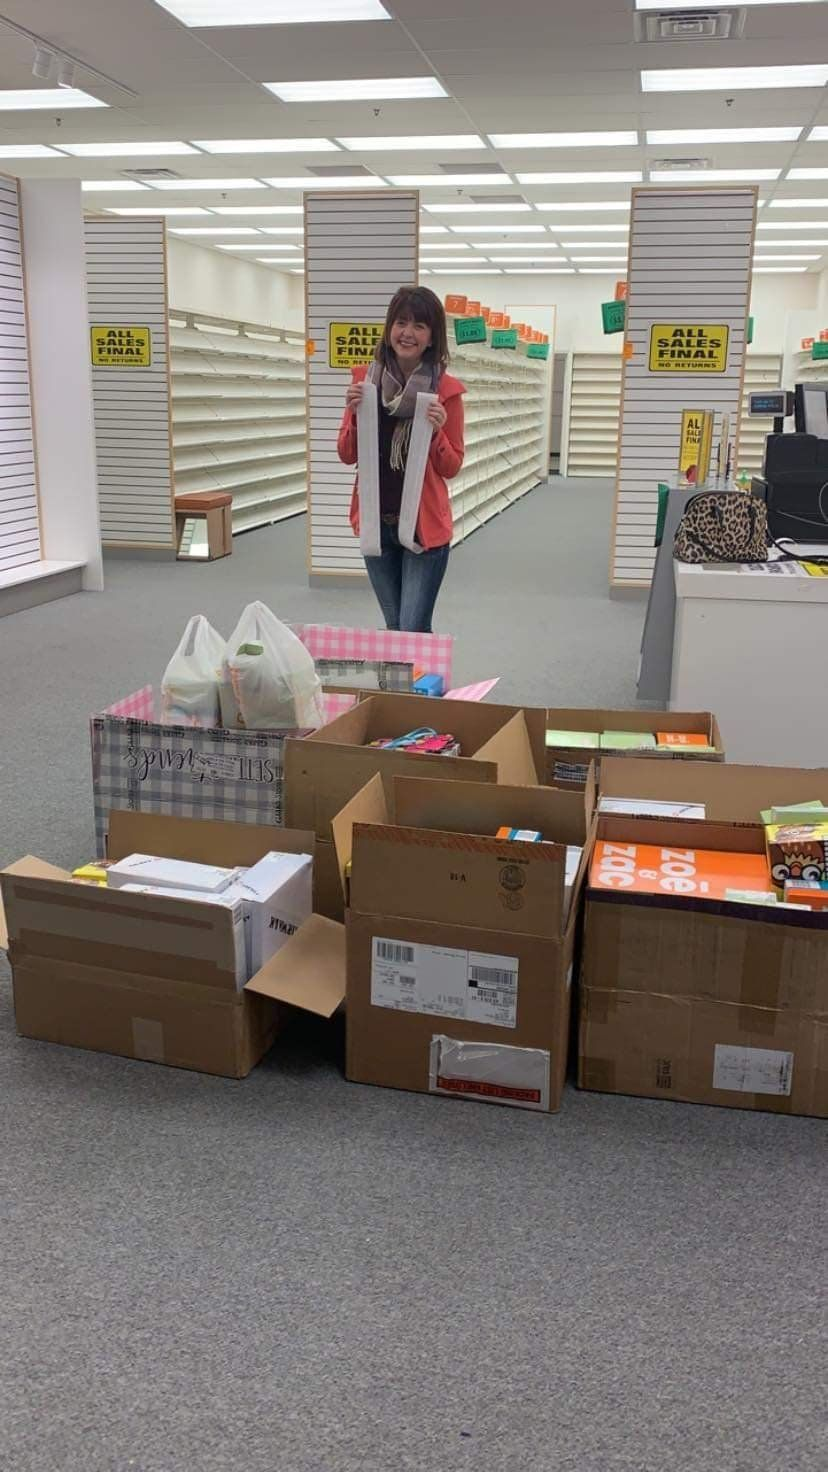 Addy Tritt purchased 204 pairs of shoes at Payless to donate to victims of the floods in Nebraska.